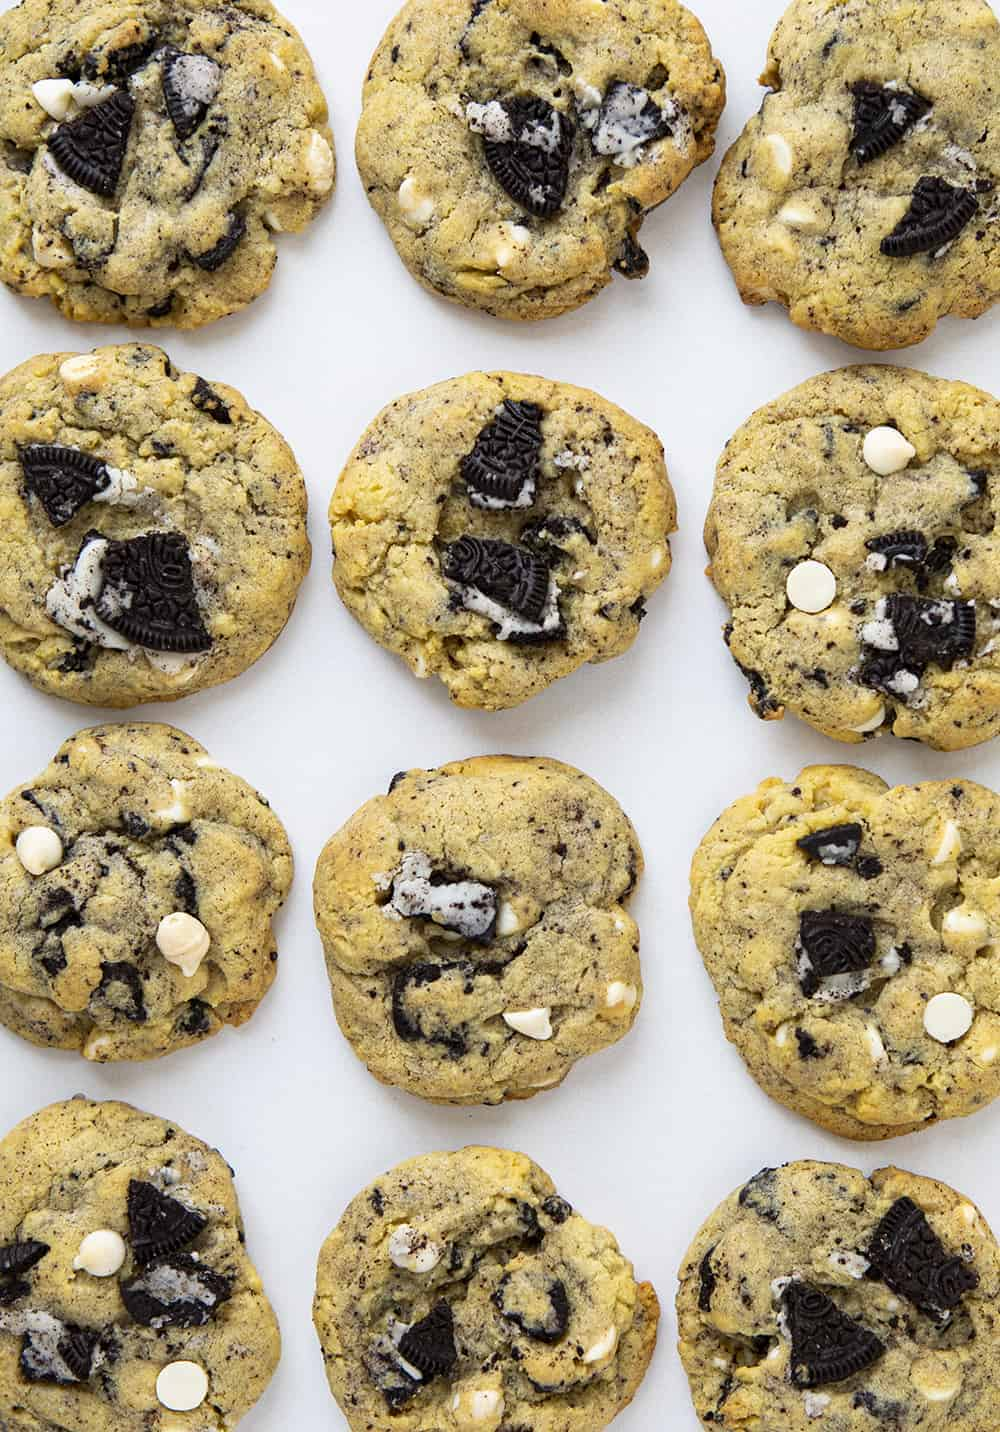 Overhead Image of Cookies and Cream Cookies Placed Next to Each Other on White Flat Surface